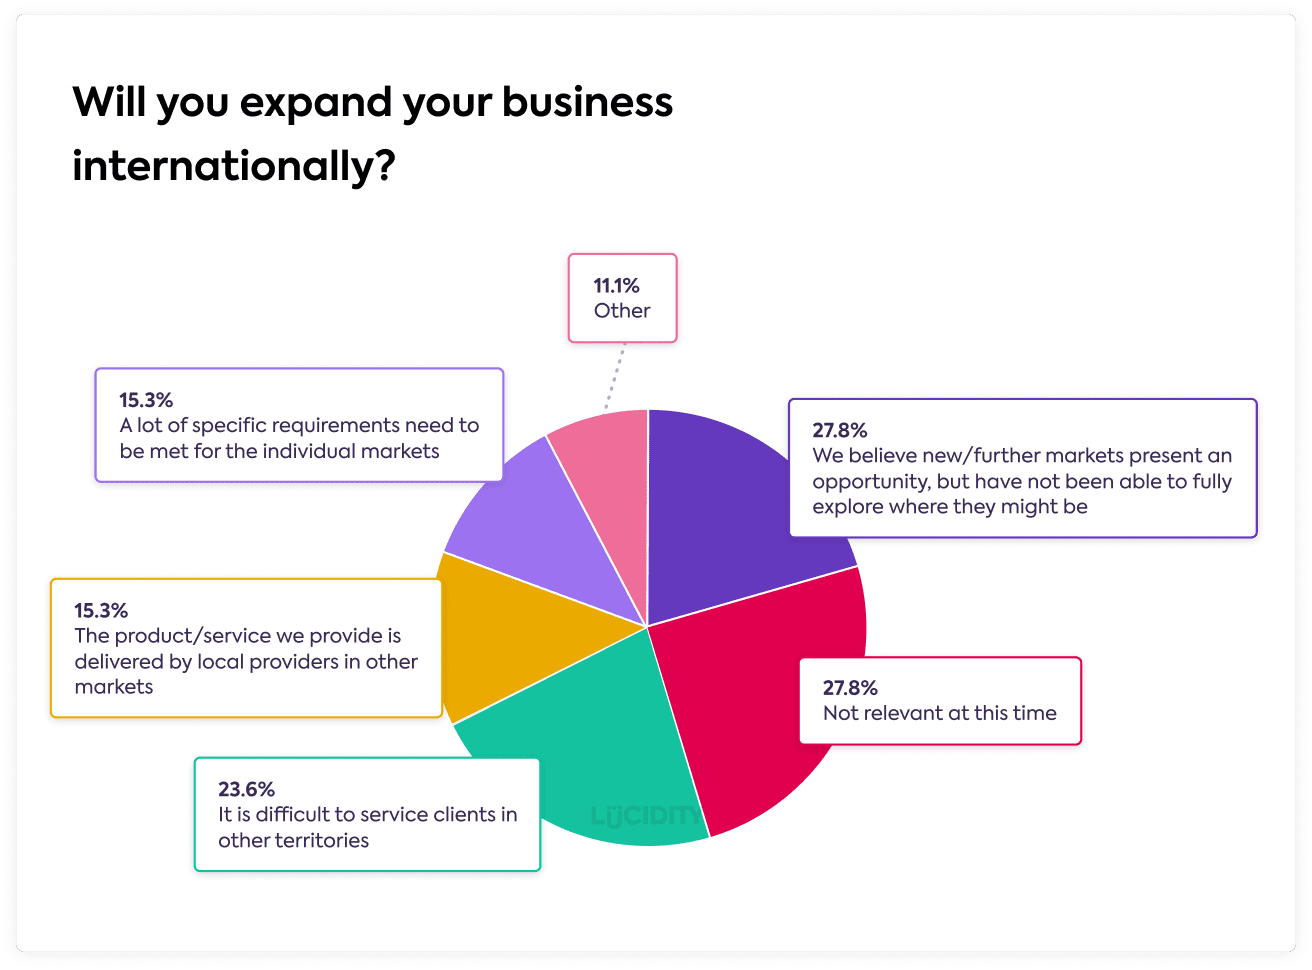 27.8% Believe expansion is an opportunity but not able to explore yet 27.8% Not relevant at this time 23.6% Difficult to service clients overseas 15.3% Product/service is delivered locally 15.3% Lot of specific requirements to enter a market